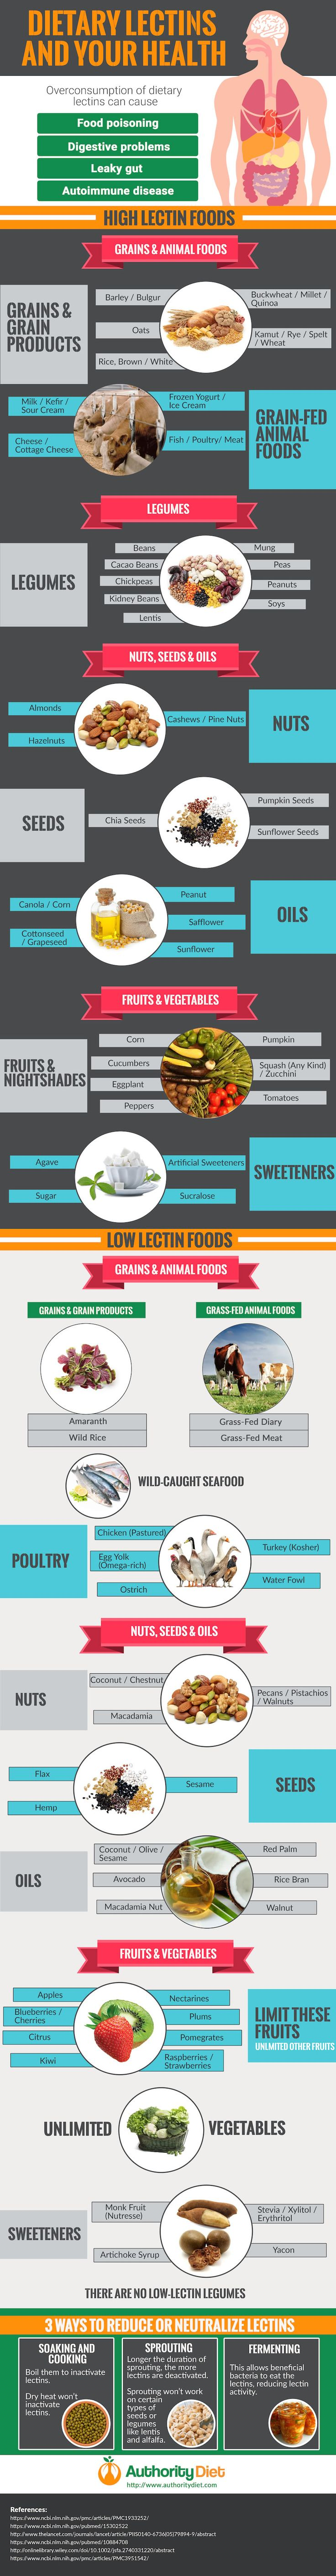 Dietary Lectins And Your Health #Infographic #Diet #Health